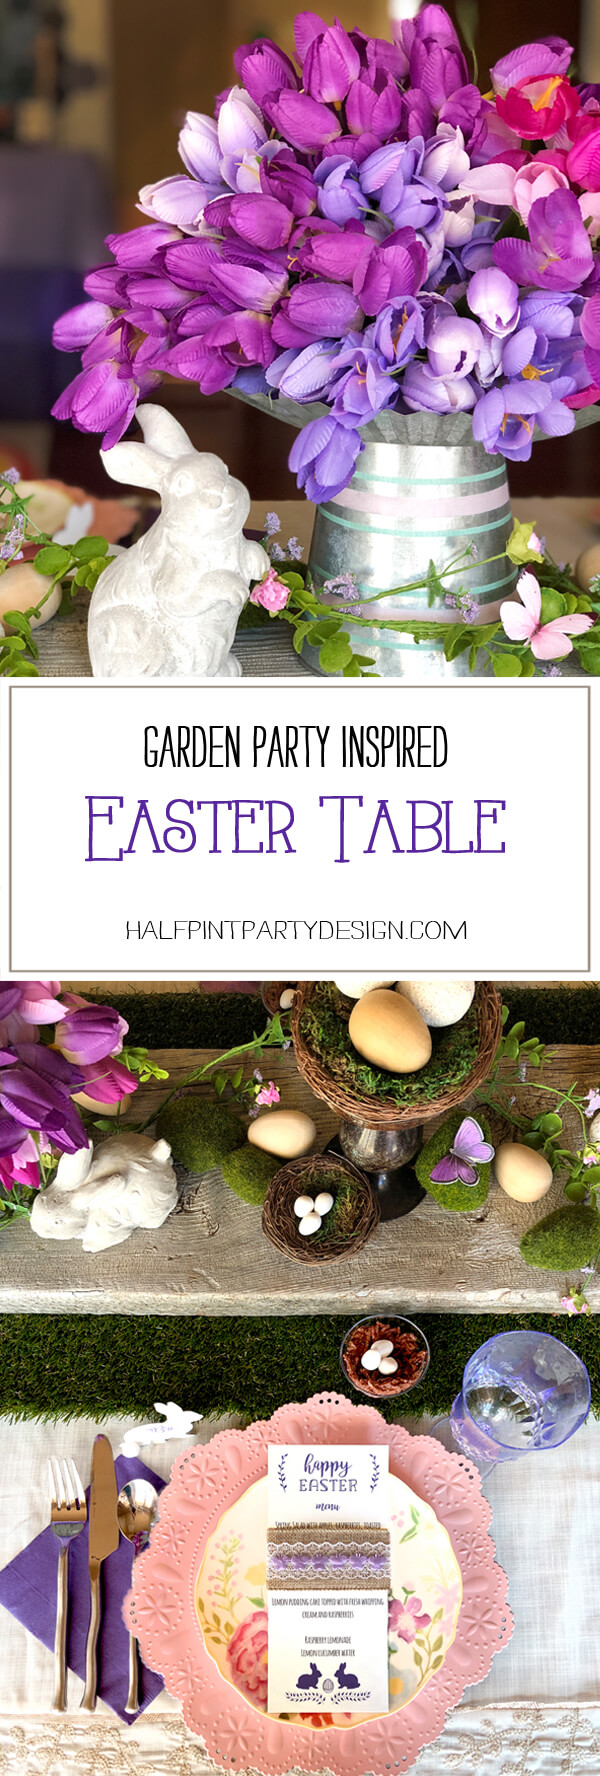 Garden Party Inspired Easter Table with bunny next to vase of purple tulips and pink and purple place setting.